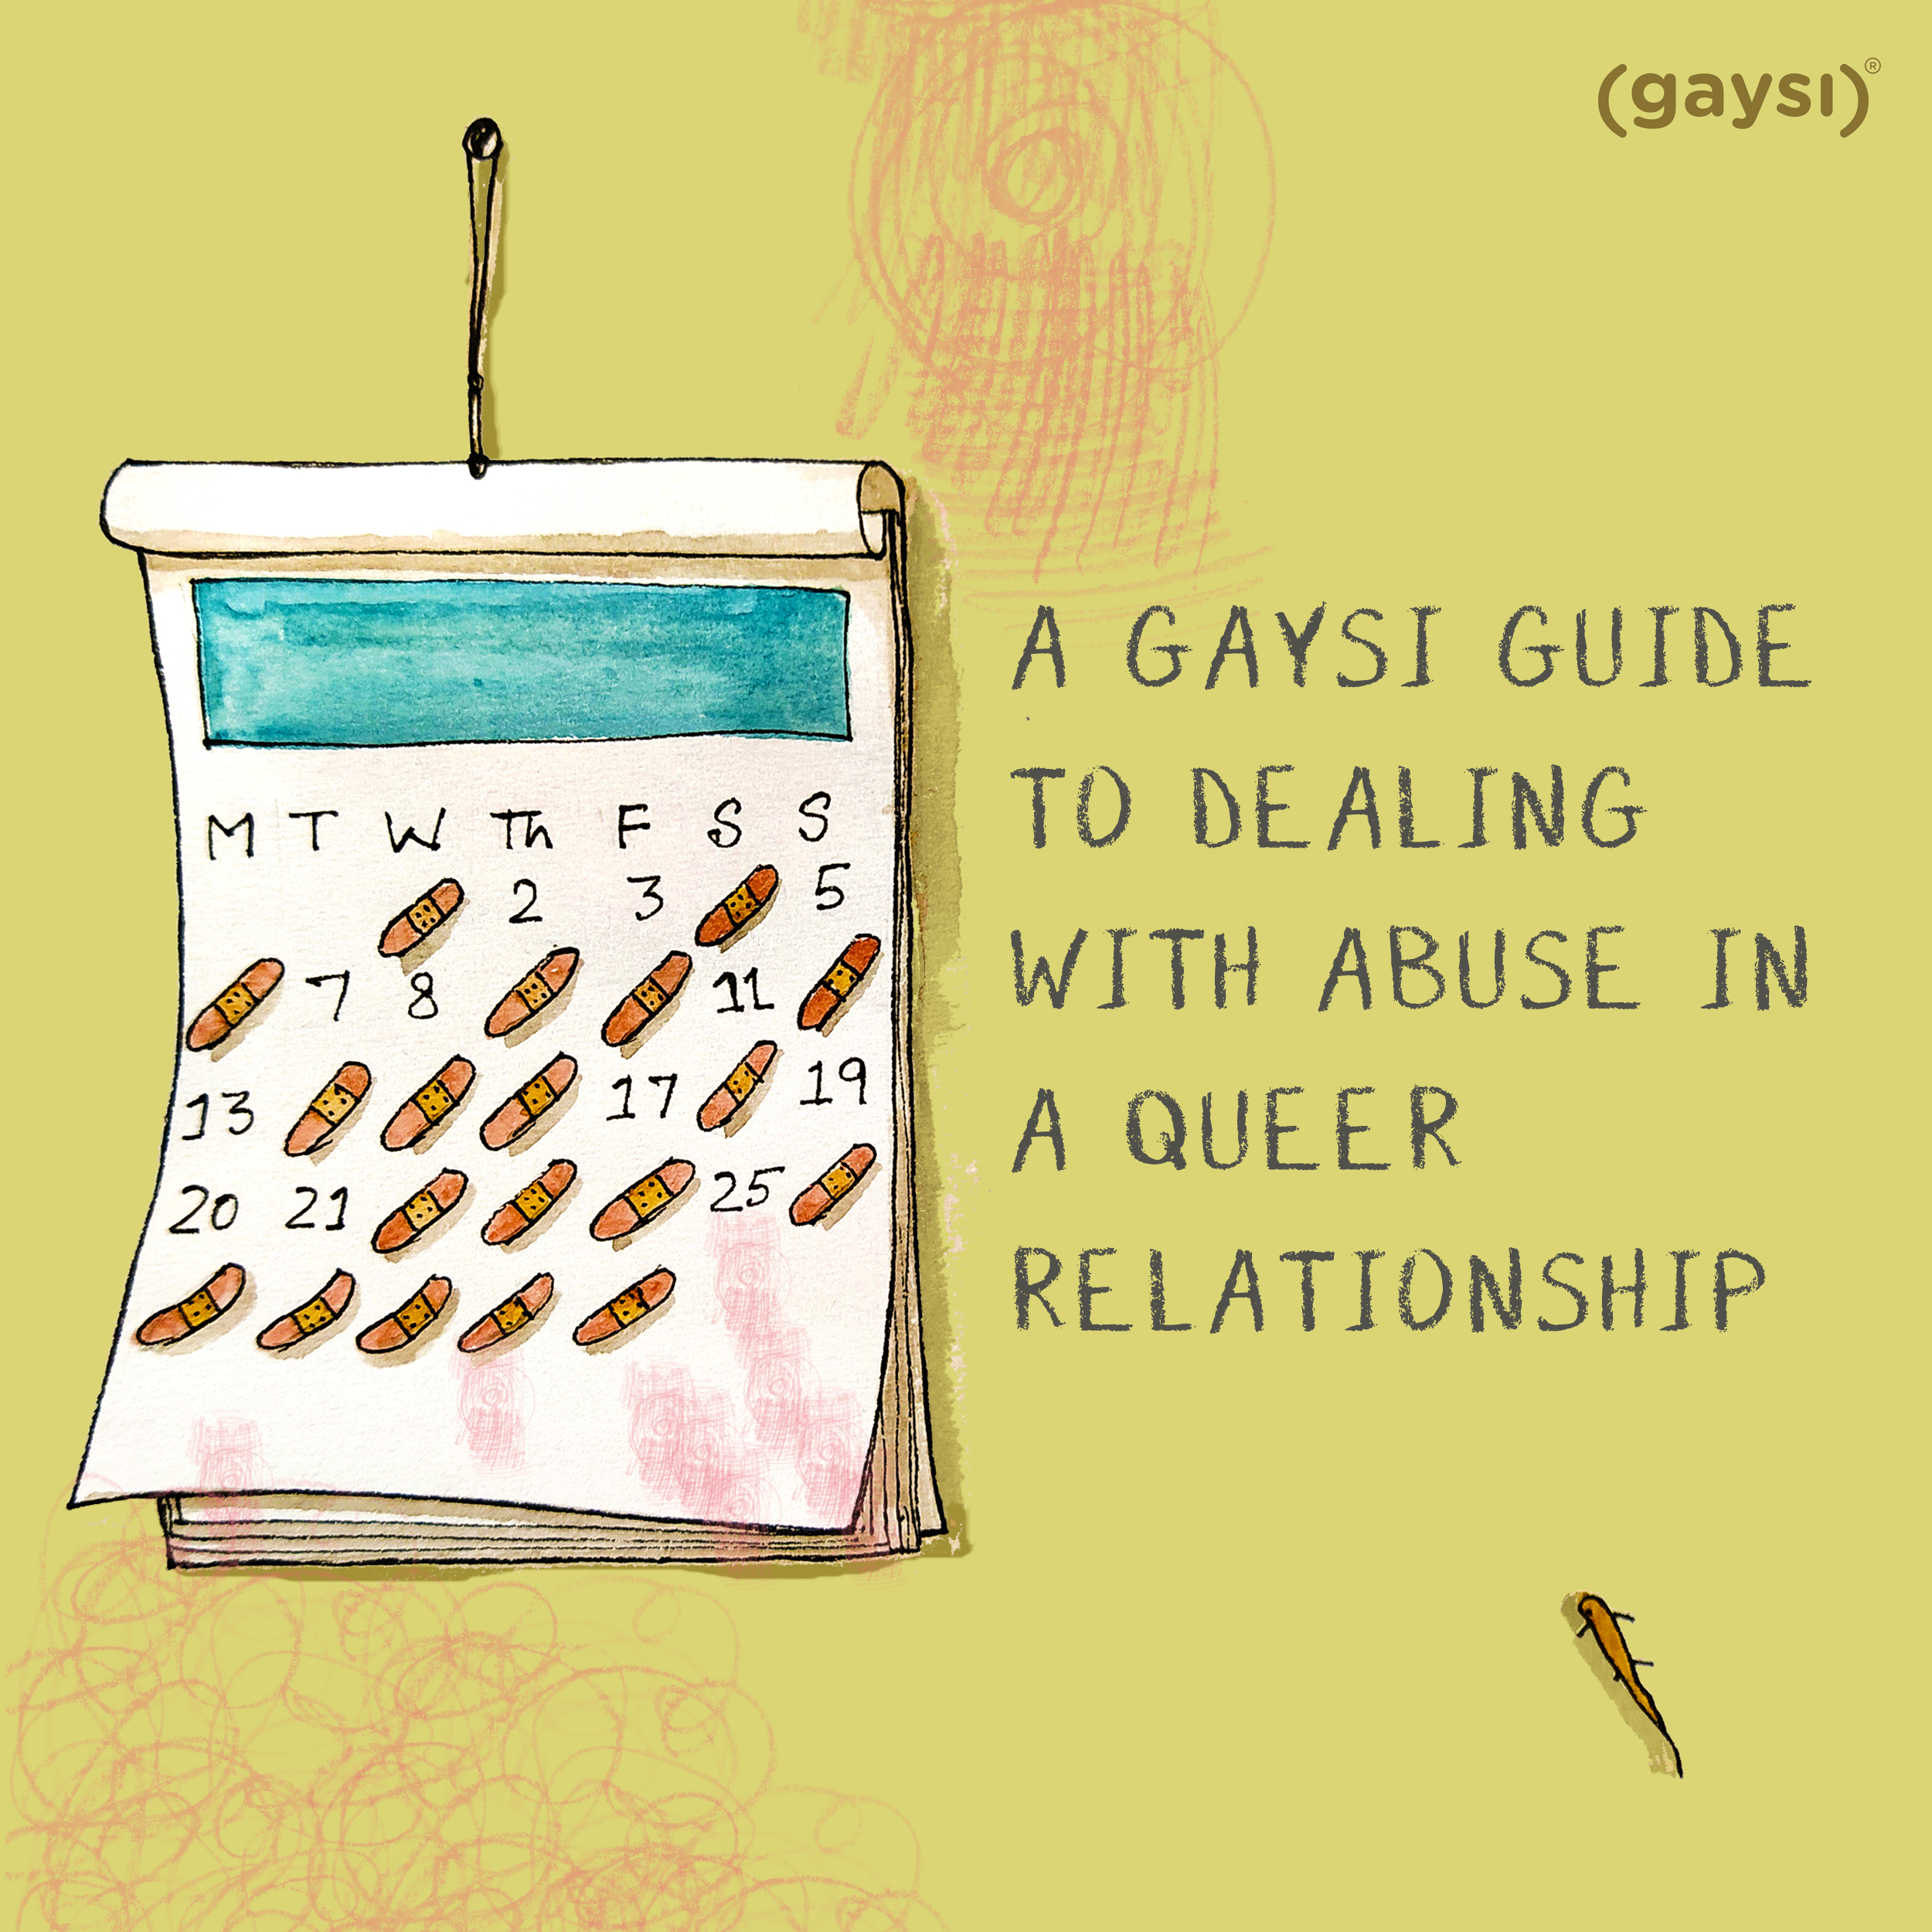 A Gaysi Guide To Dealing With Abuse In A Queer Relationship